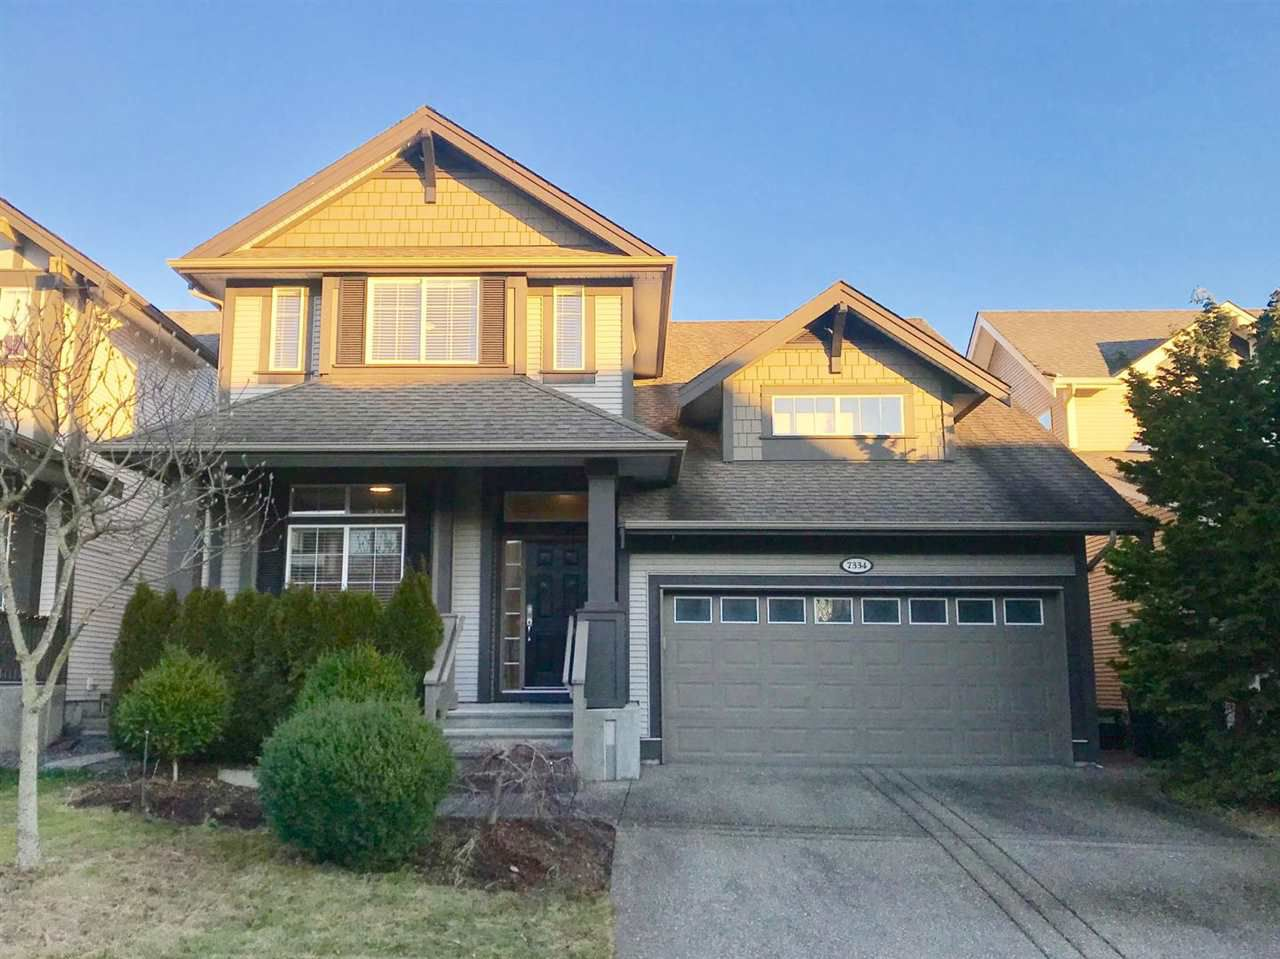 Main Photo: 7334 200A Street in Langley: Willoughby Heights House for sale : MLS®# R2360506